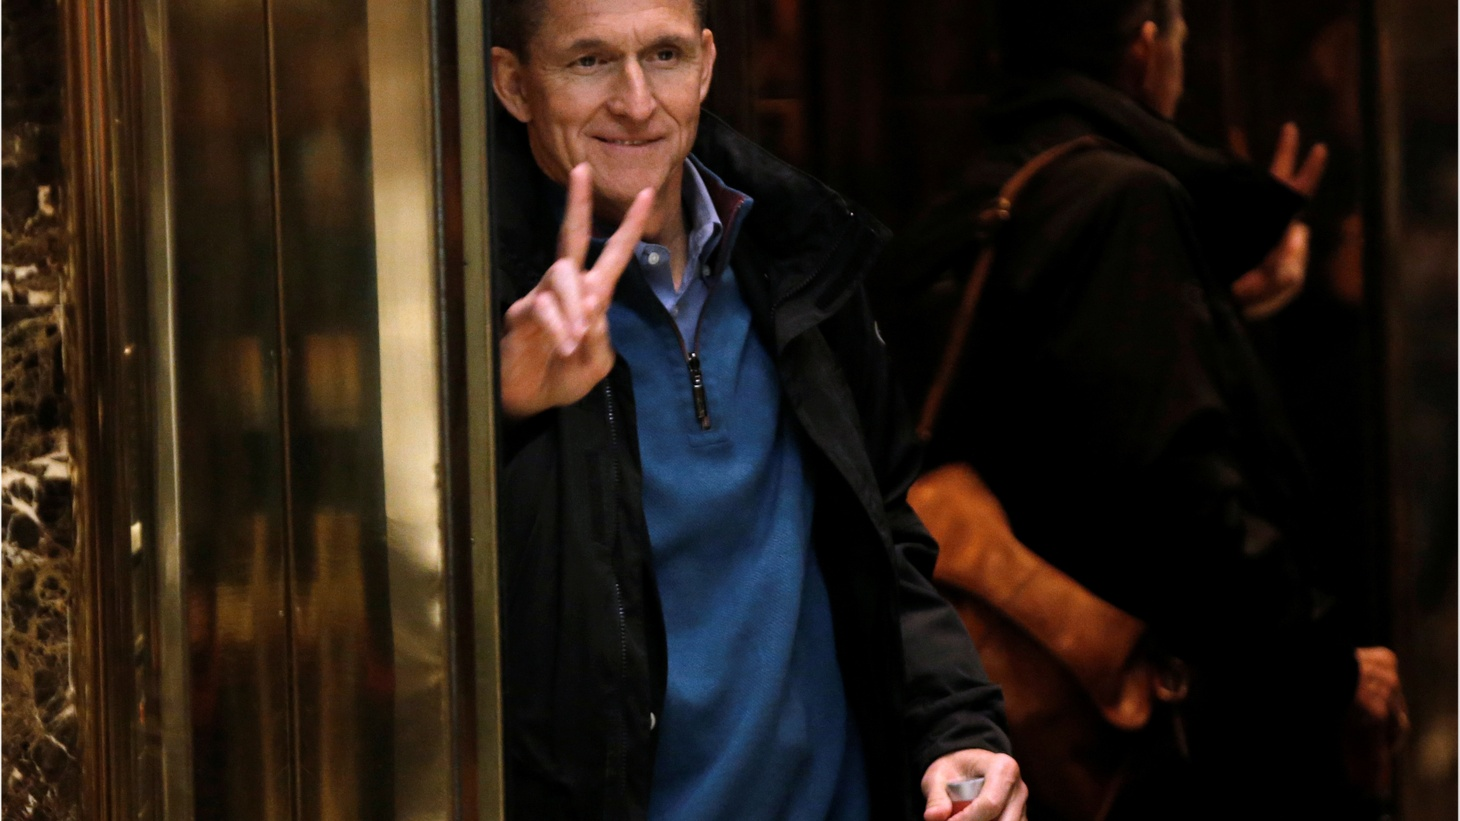 Michael Flynn resigned as National Security Advisor after he admitted not fully briefing Vice President Mike Pence about his conversations with the Russian ambassador to the US. Also, former Senator Barbara Boxer has a plan to get more Democrats in power.